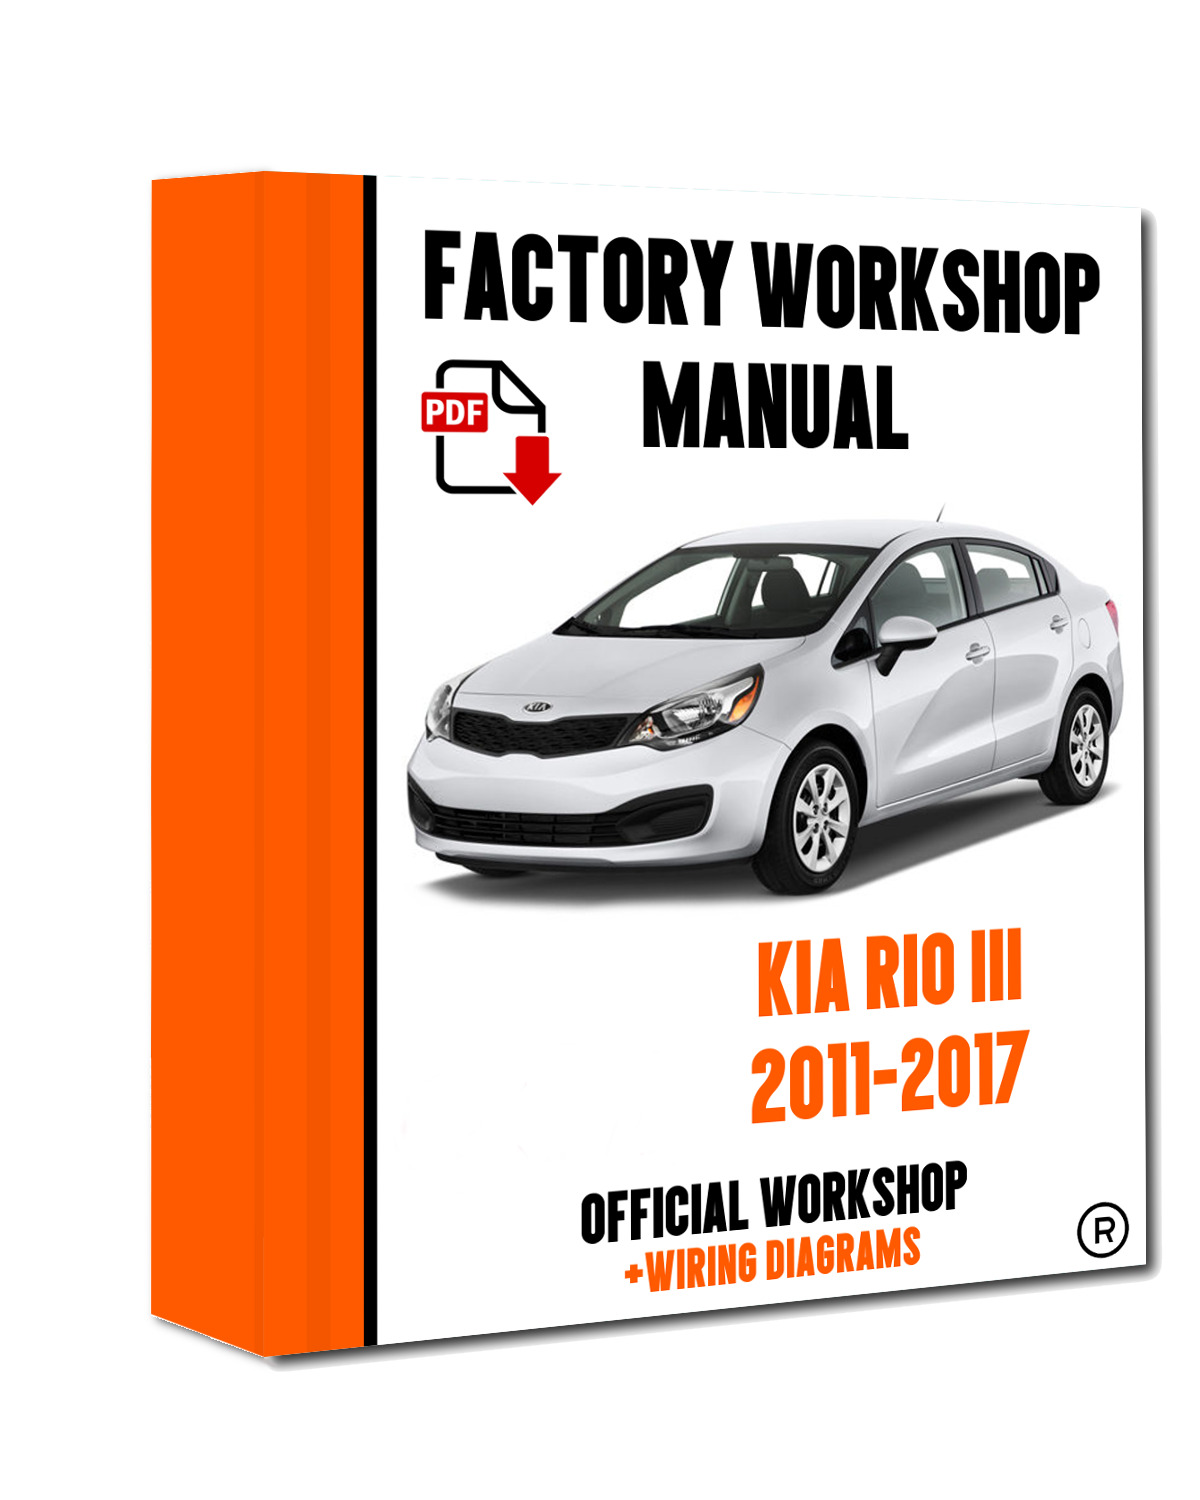 official workshop manual service repair kia rio 2011 2017 9 49 rh picclick co uk 2008 Kia Rio Interior kia rio 2008 service manual pdf